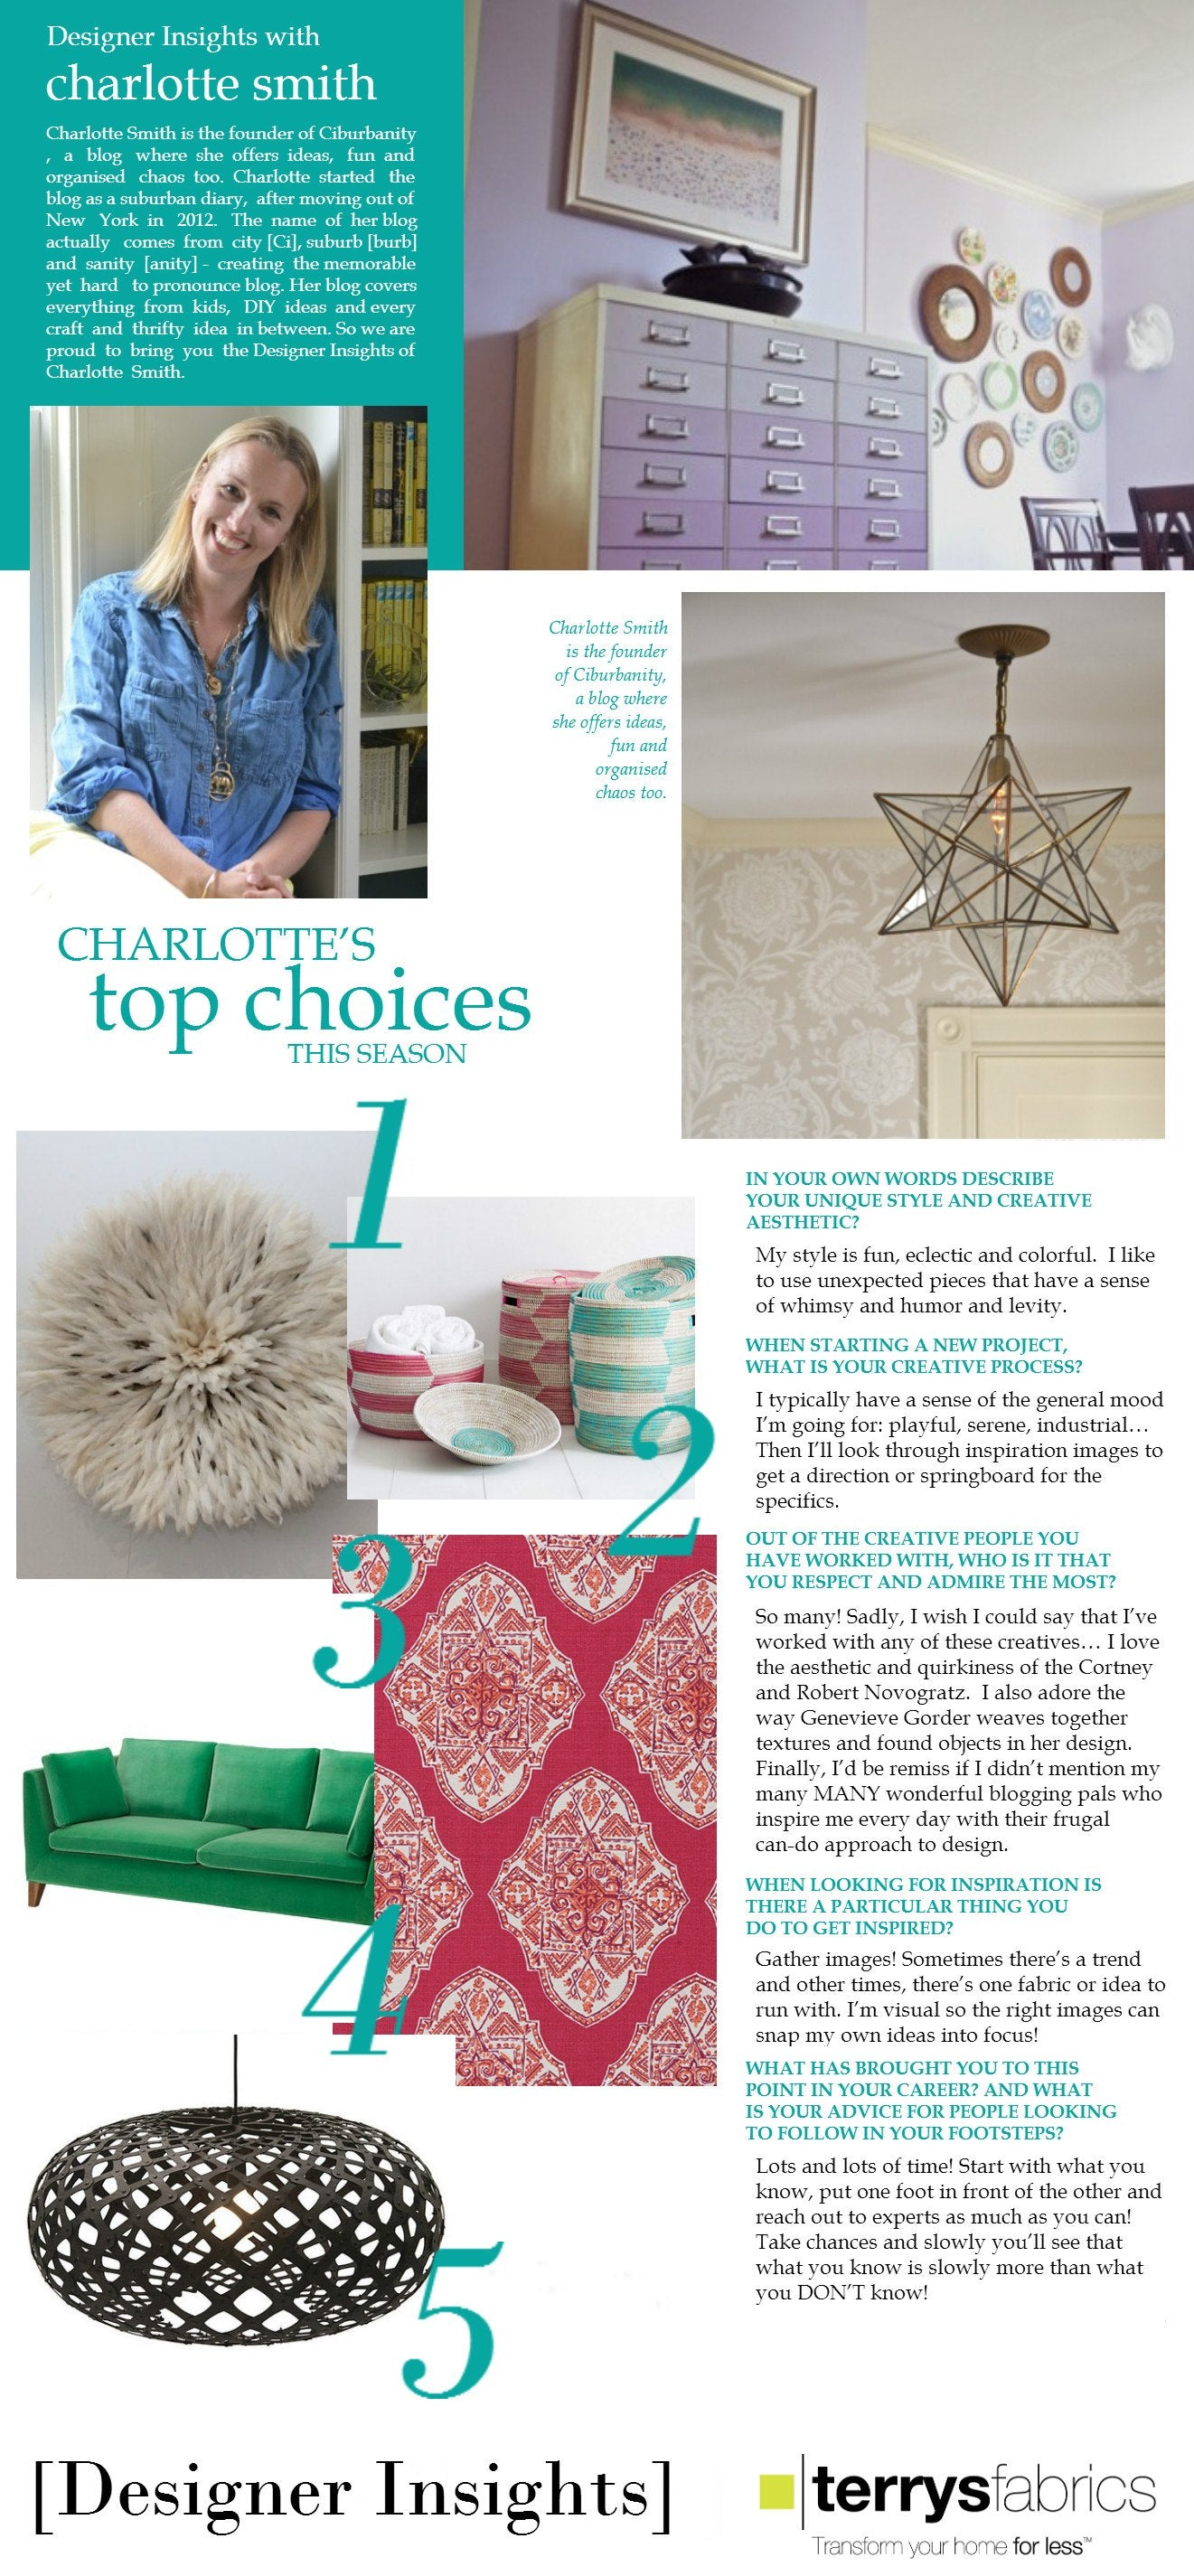 Designer Insights - Charlotte Smith